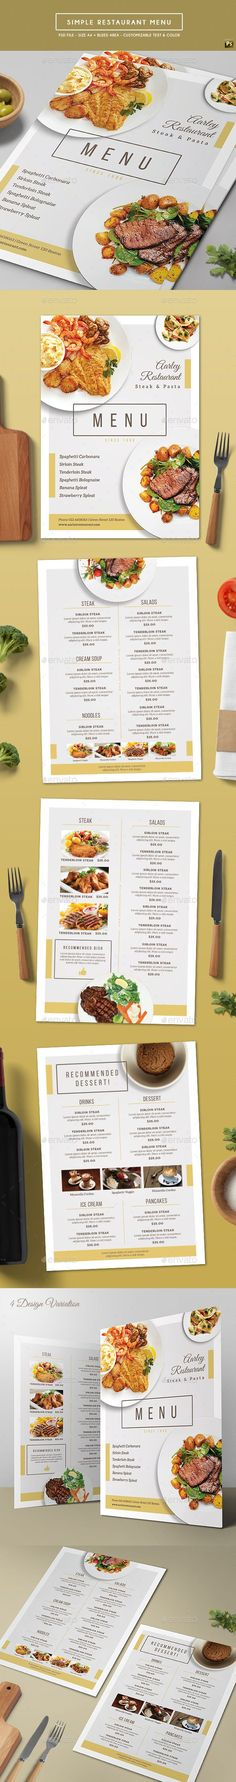 Simple Restaurant Menu - Food Menus Print Templates Download here : https://graphicriver.net/item/simple-restaurant-menu/19201609?s_rank=111&ref=Al-fatih